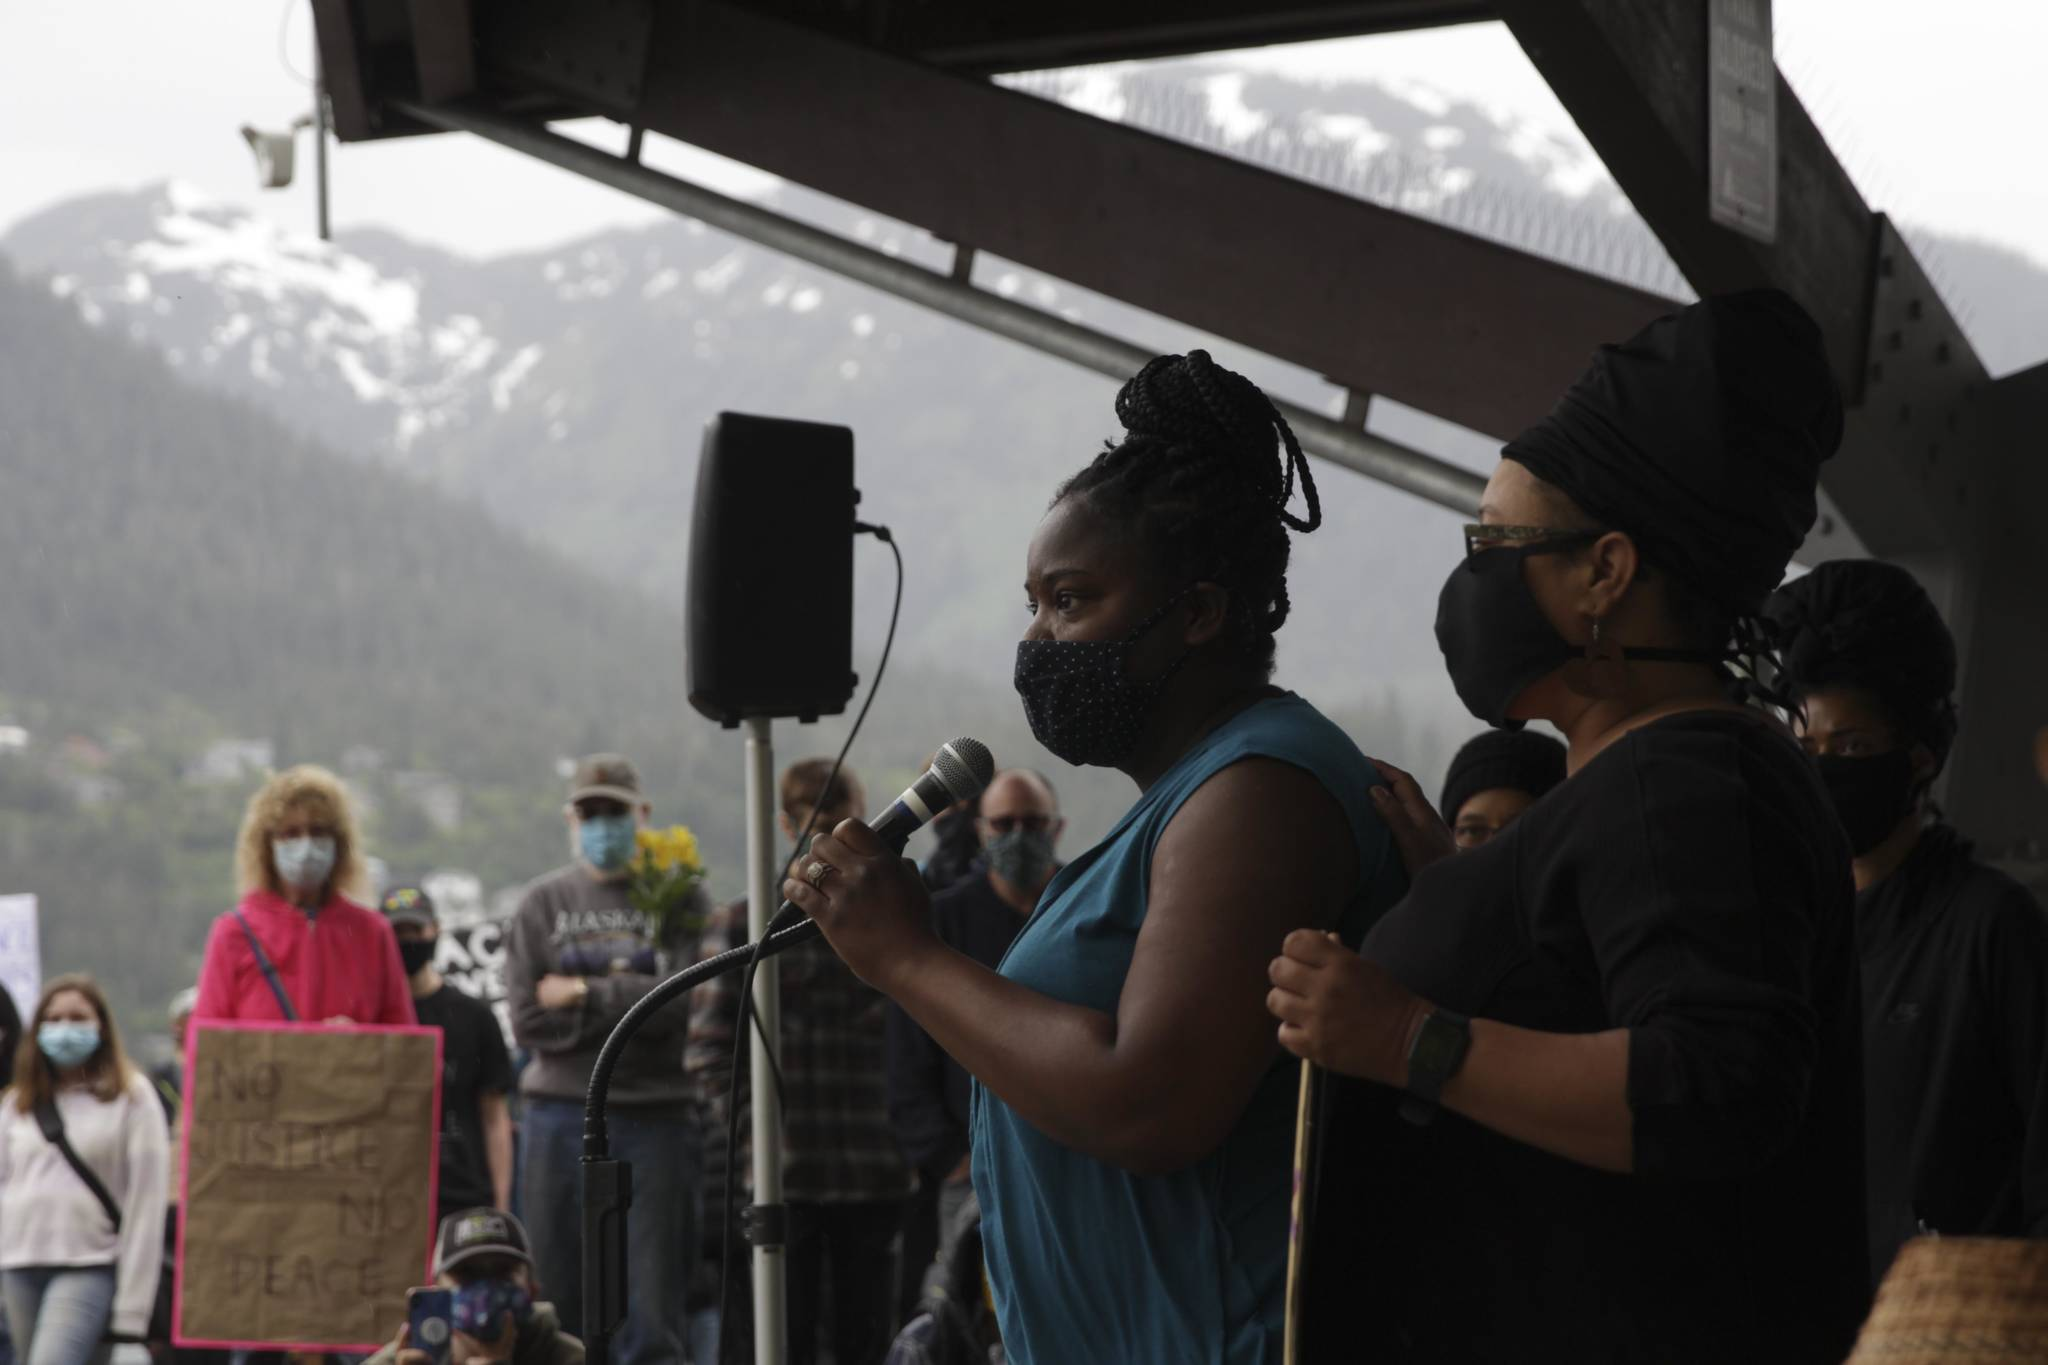 Leah Haskell-Cummins speaks during a rally for human rights and the sanctity of black lives in Marine Park on June 6, 2020, following the death of George Floyd in the custody of the Minneapolis Police Department. (Michael S. Lockett | Juneau Empire)